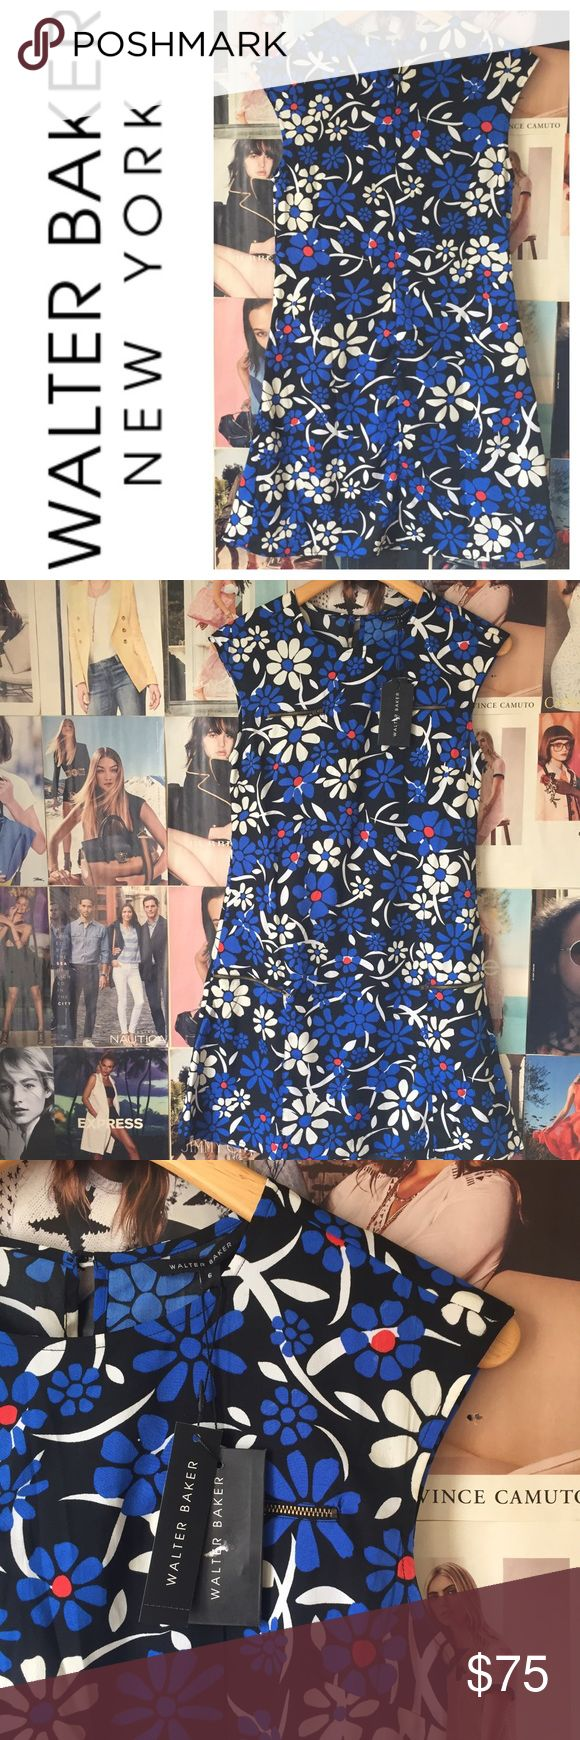 """⭐️HOST PICK⭐️ Walter Baker   Cara Dress Definitely not a shrinking violet of a dress!! This happy flowery sheath dress from Walter Baker is versatile and comfortable. HOST PICK! 6. Bust 36"""". Length 34.5"""". Waist 34"""". Two front zip chest pockets, 2 low zipper details. Back button close. Extra button included. NWT. Walter Baker Dresses"""